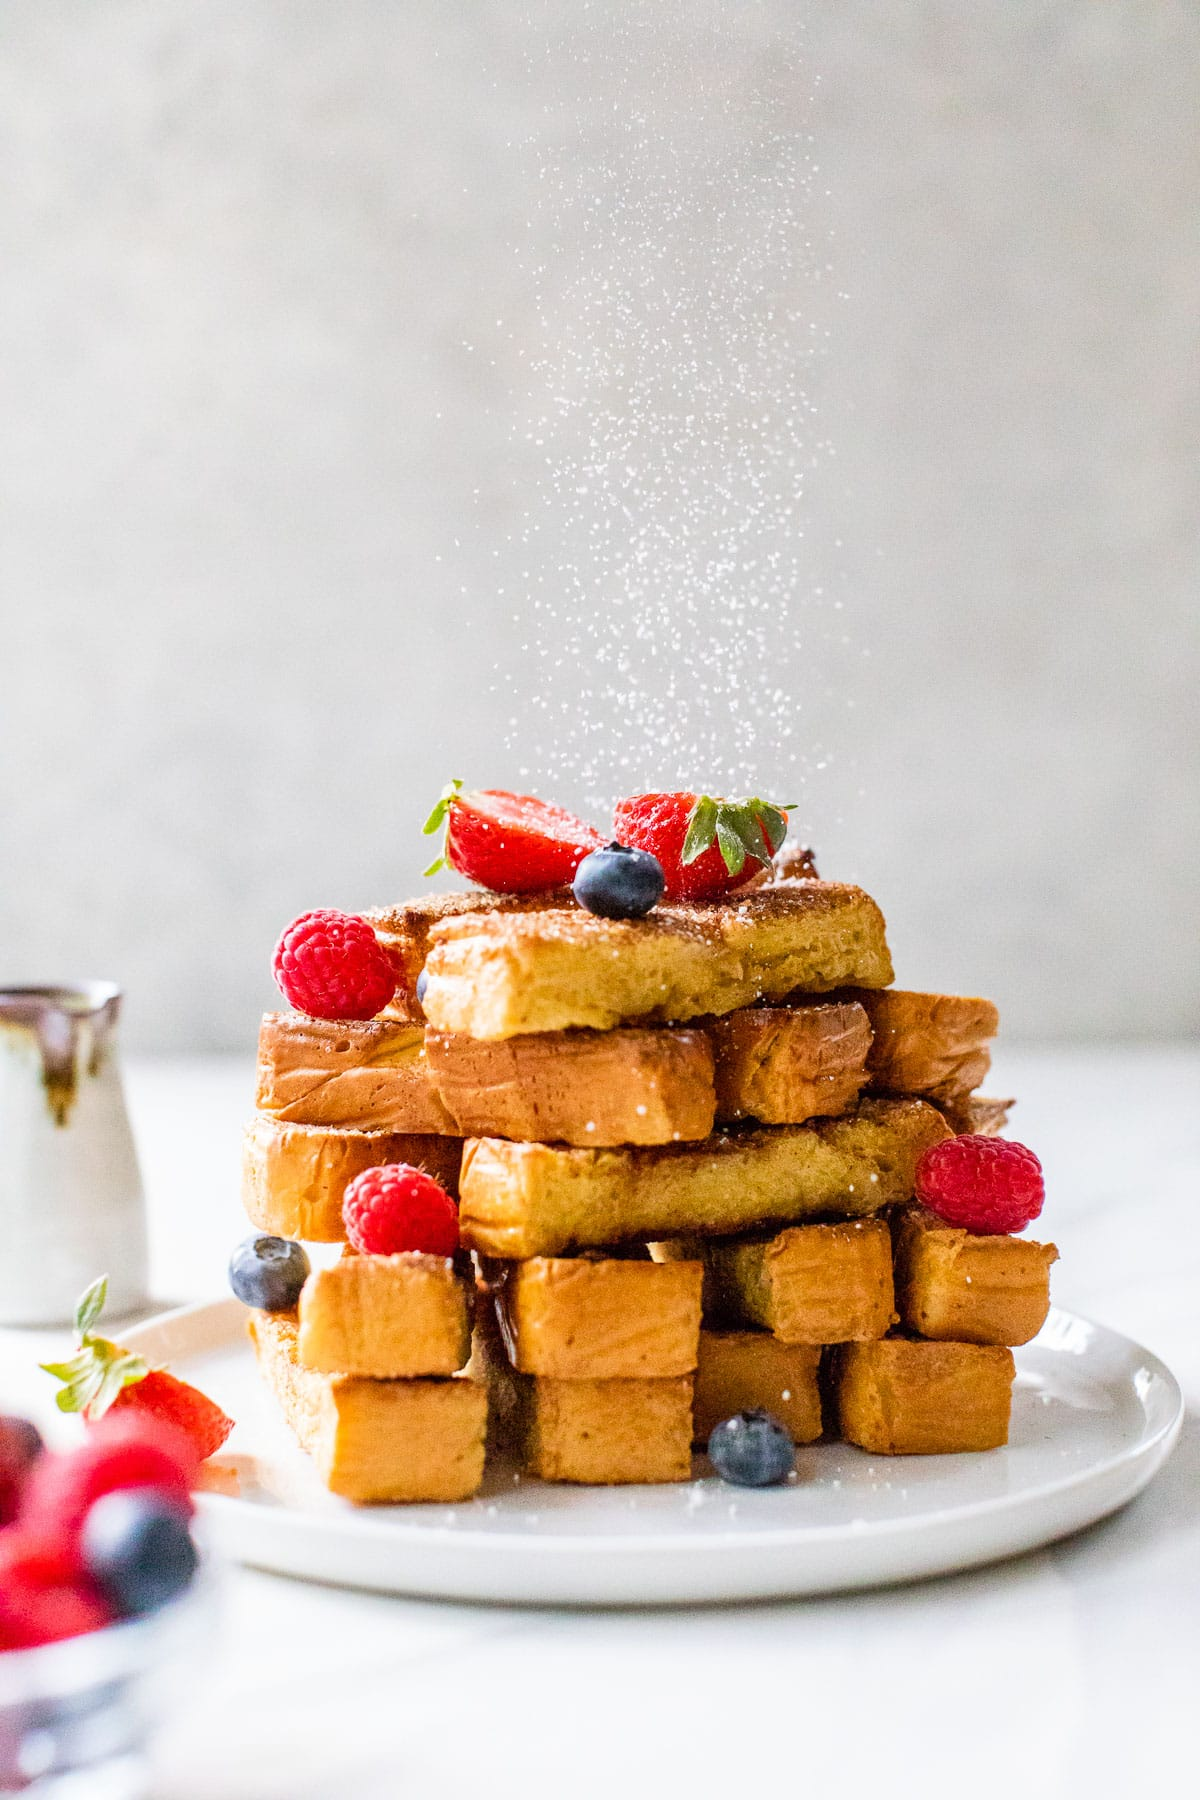 crispy french toast sticks stacked on a plate